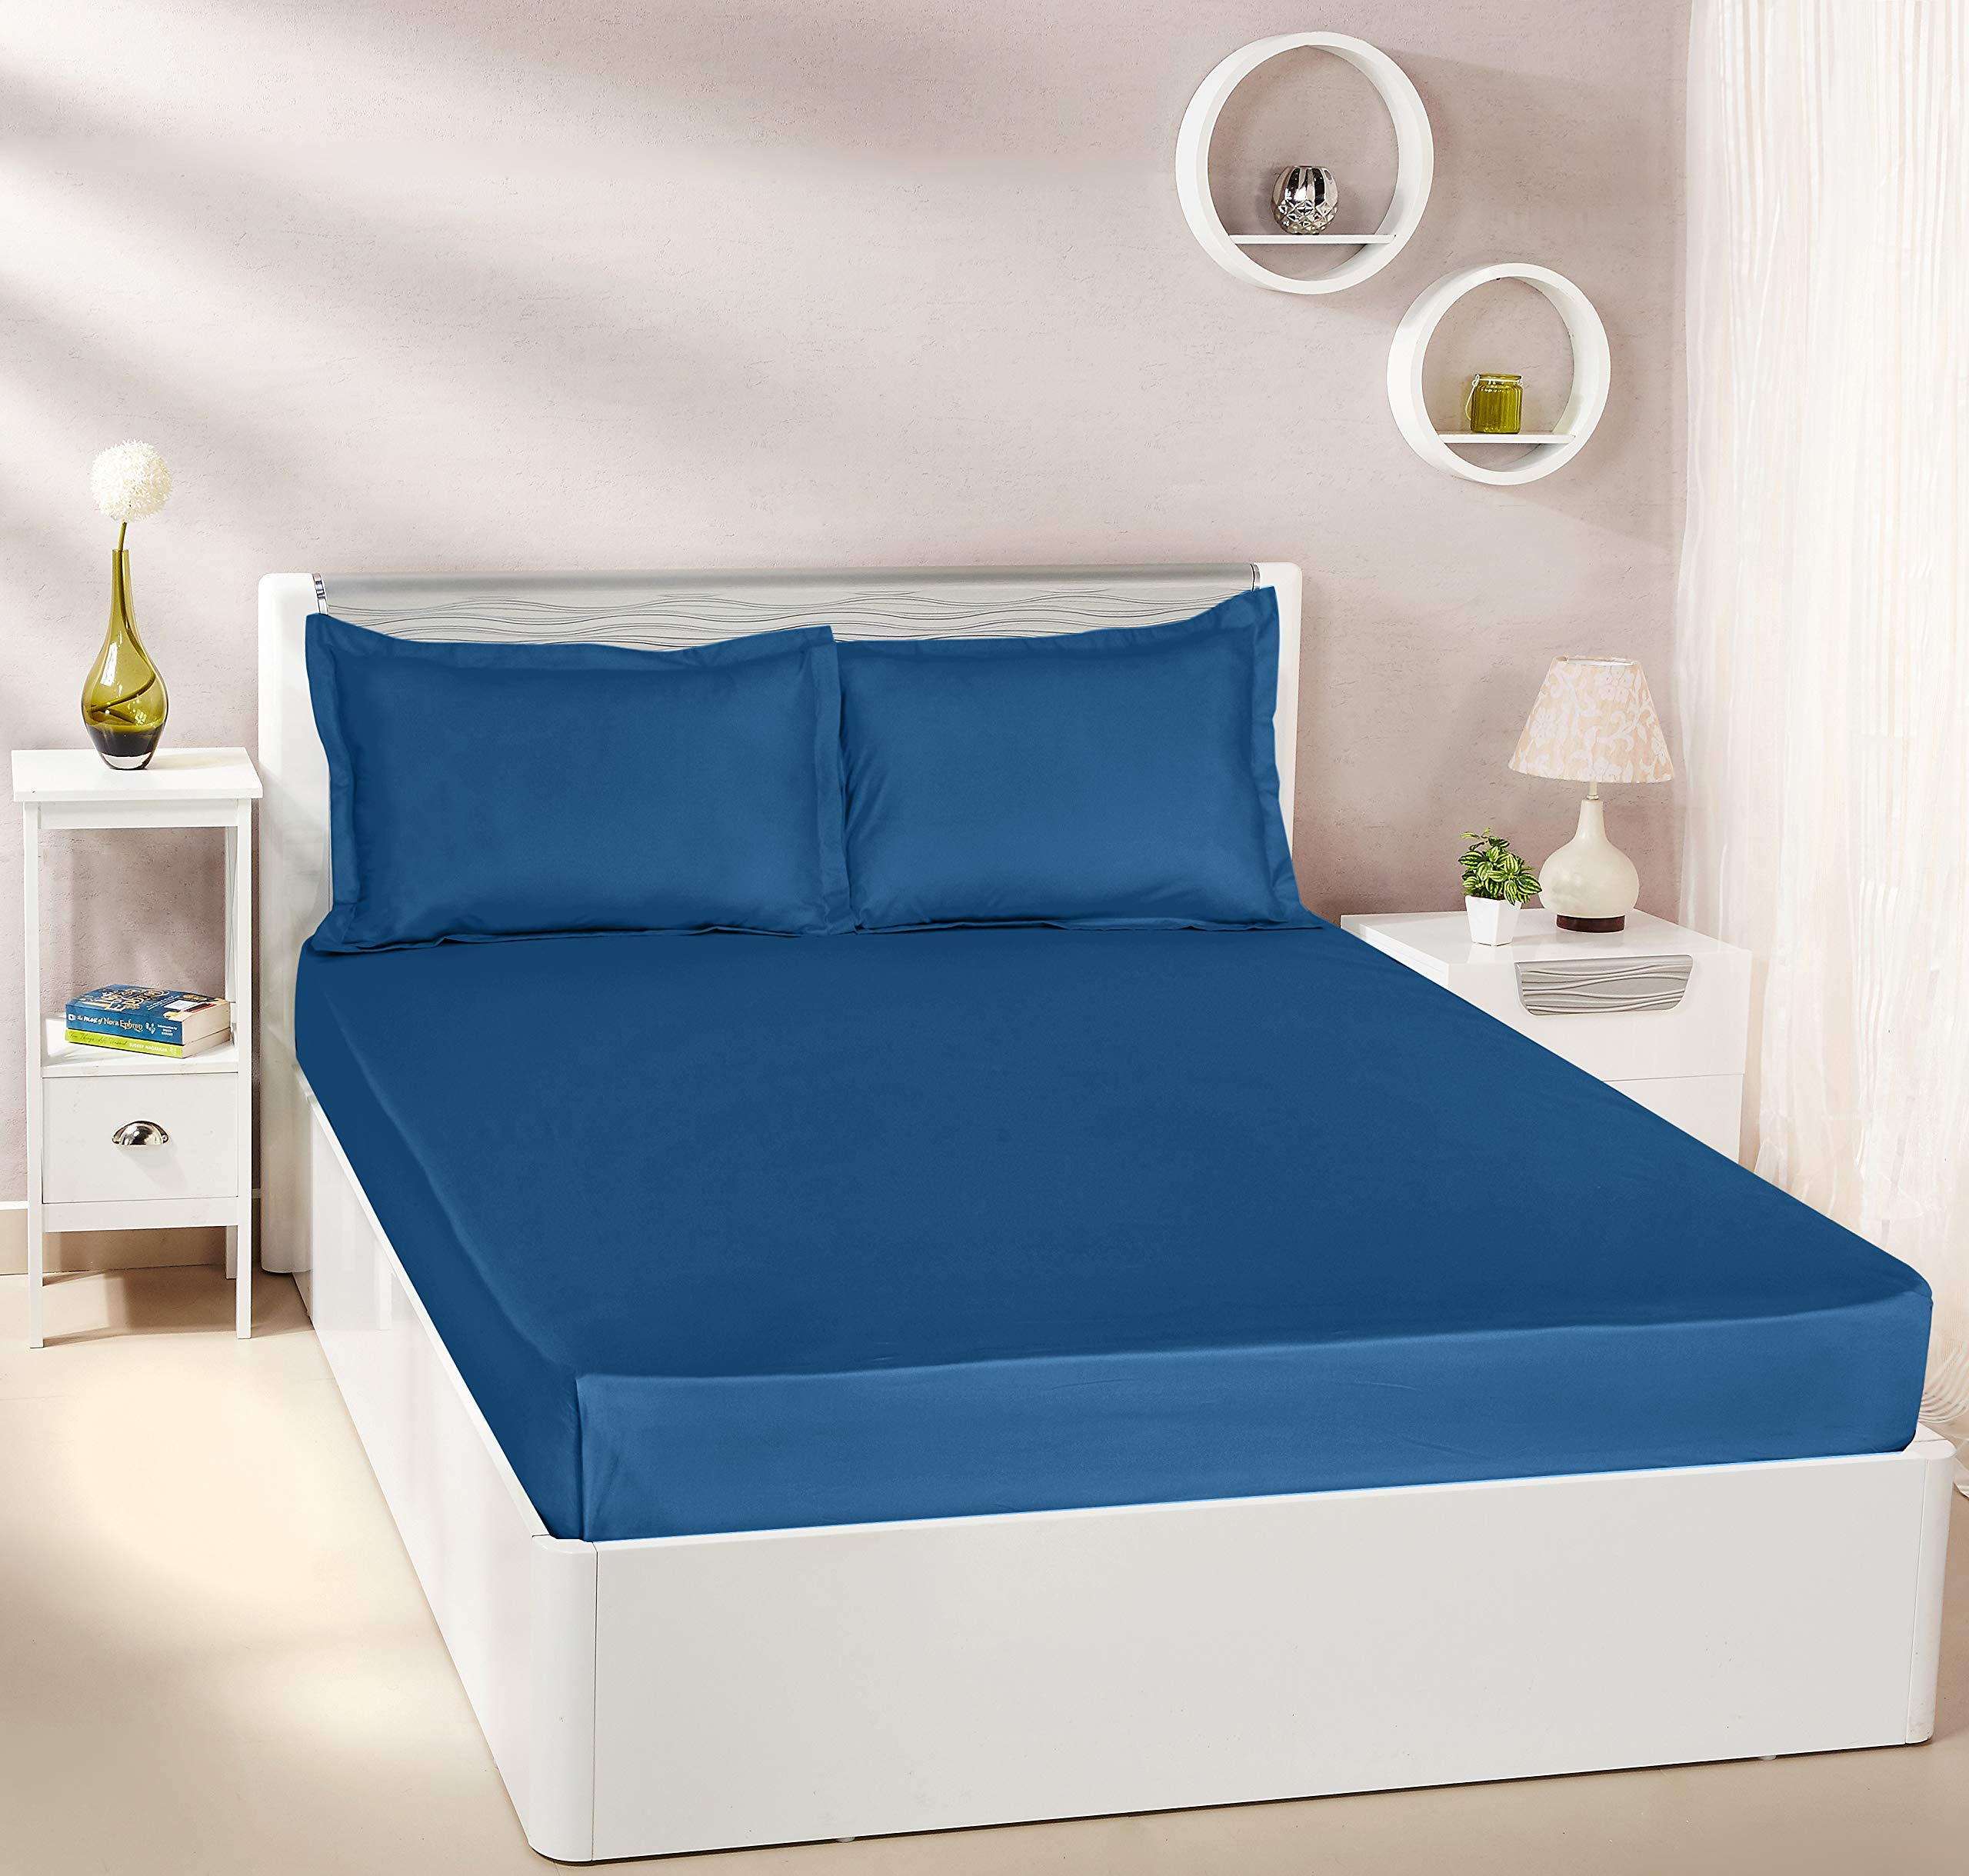 Amazon Brand - Solimo Solid 144 TC 100% Cotton Double Bedsheet with 2 Pillow Covers, Navy Blue product image